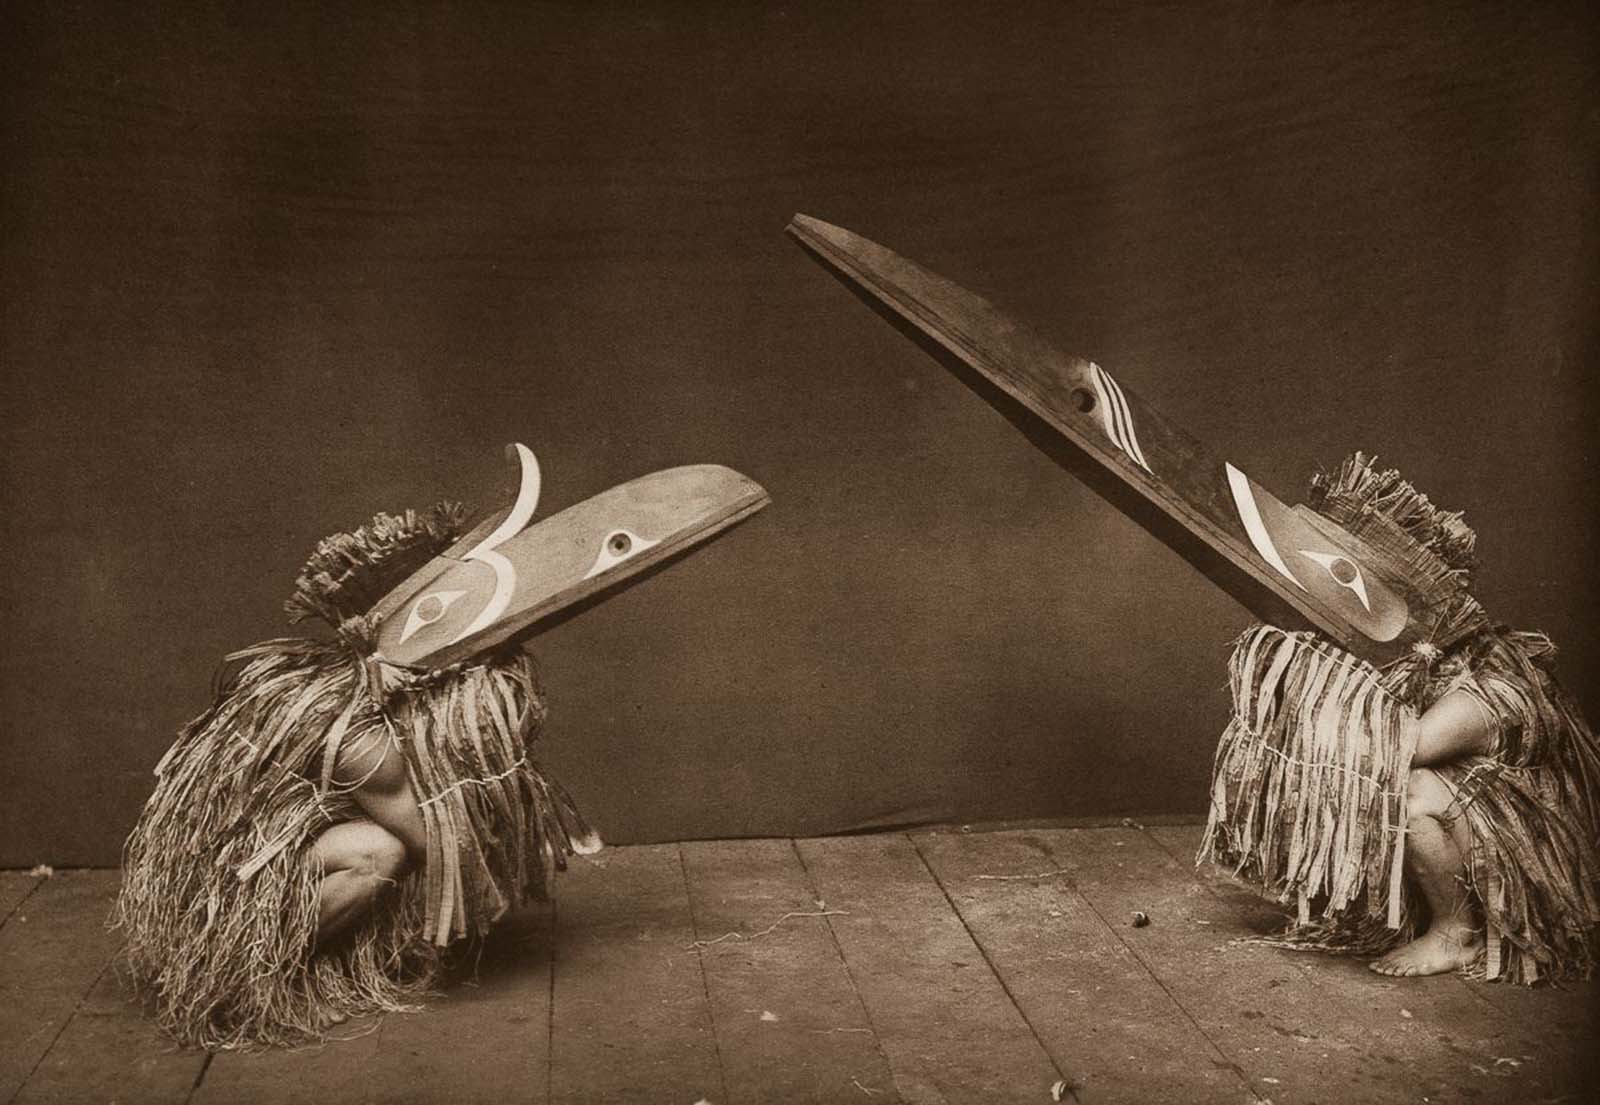 Nakoaktok dancers wear Hamatsa masks in a ritual. 1914.